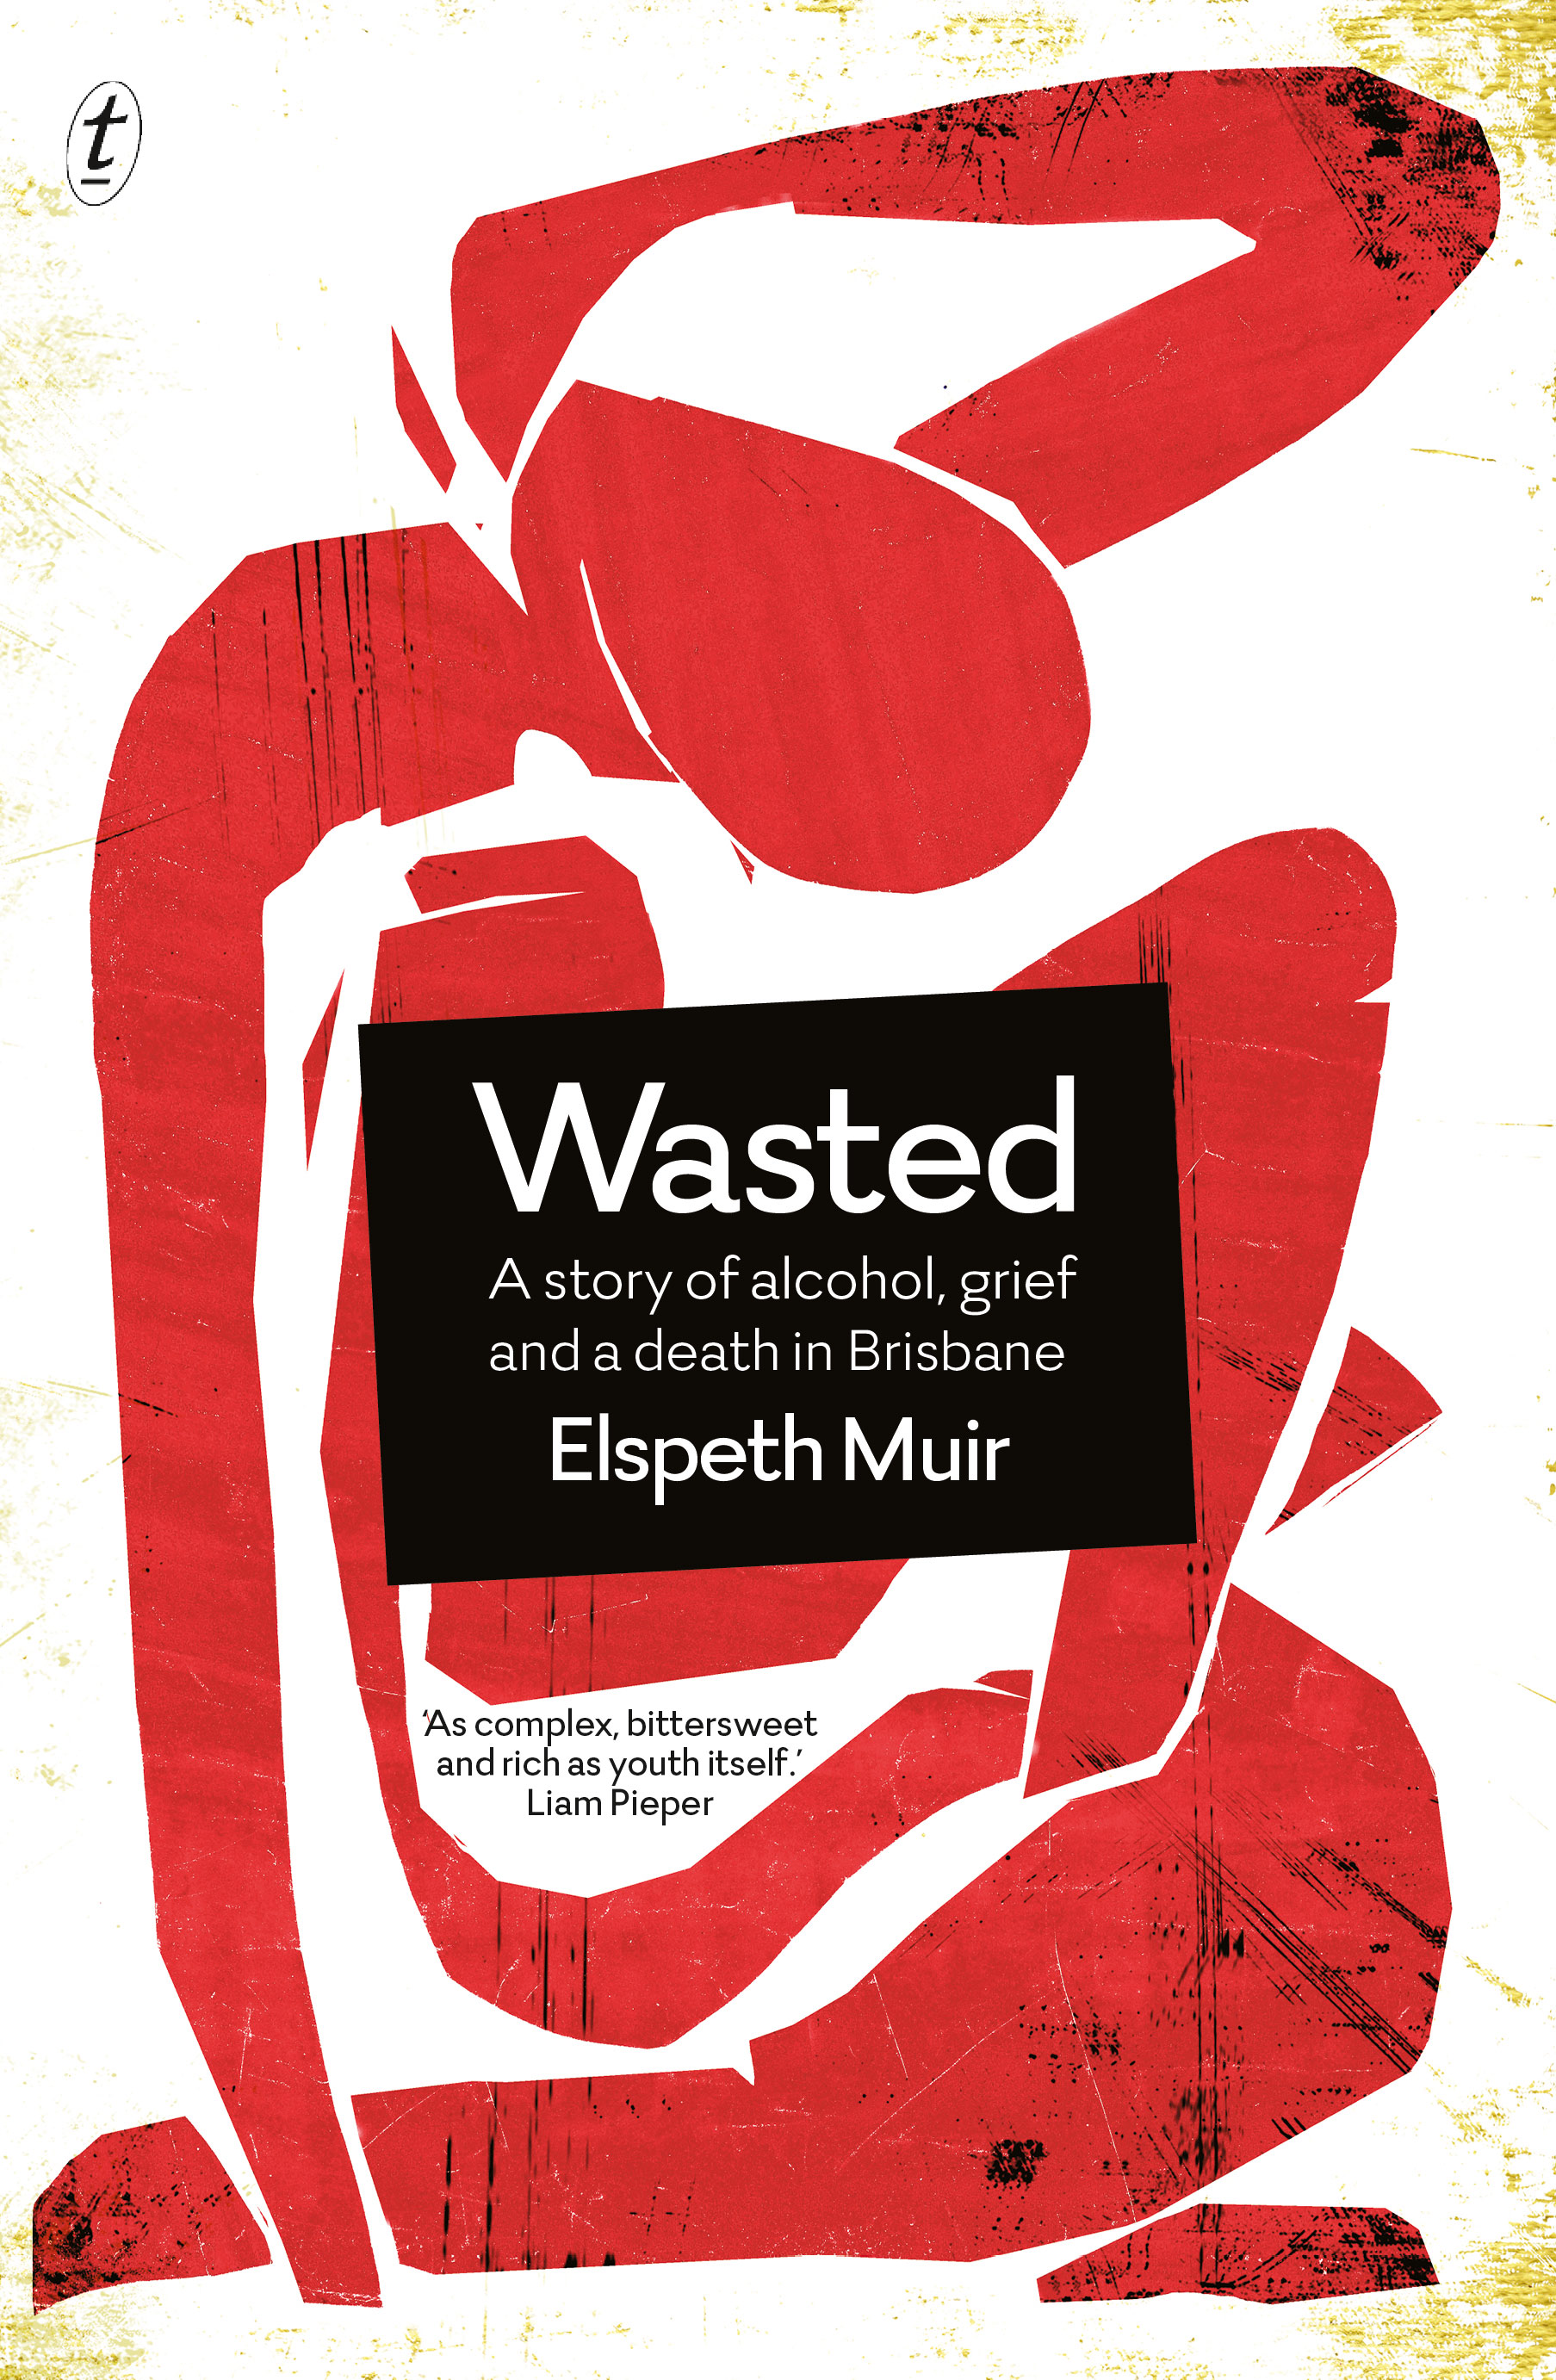 A Wasted Life: An interview with Stella Prize longlisted author Elspeth Muir